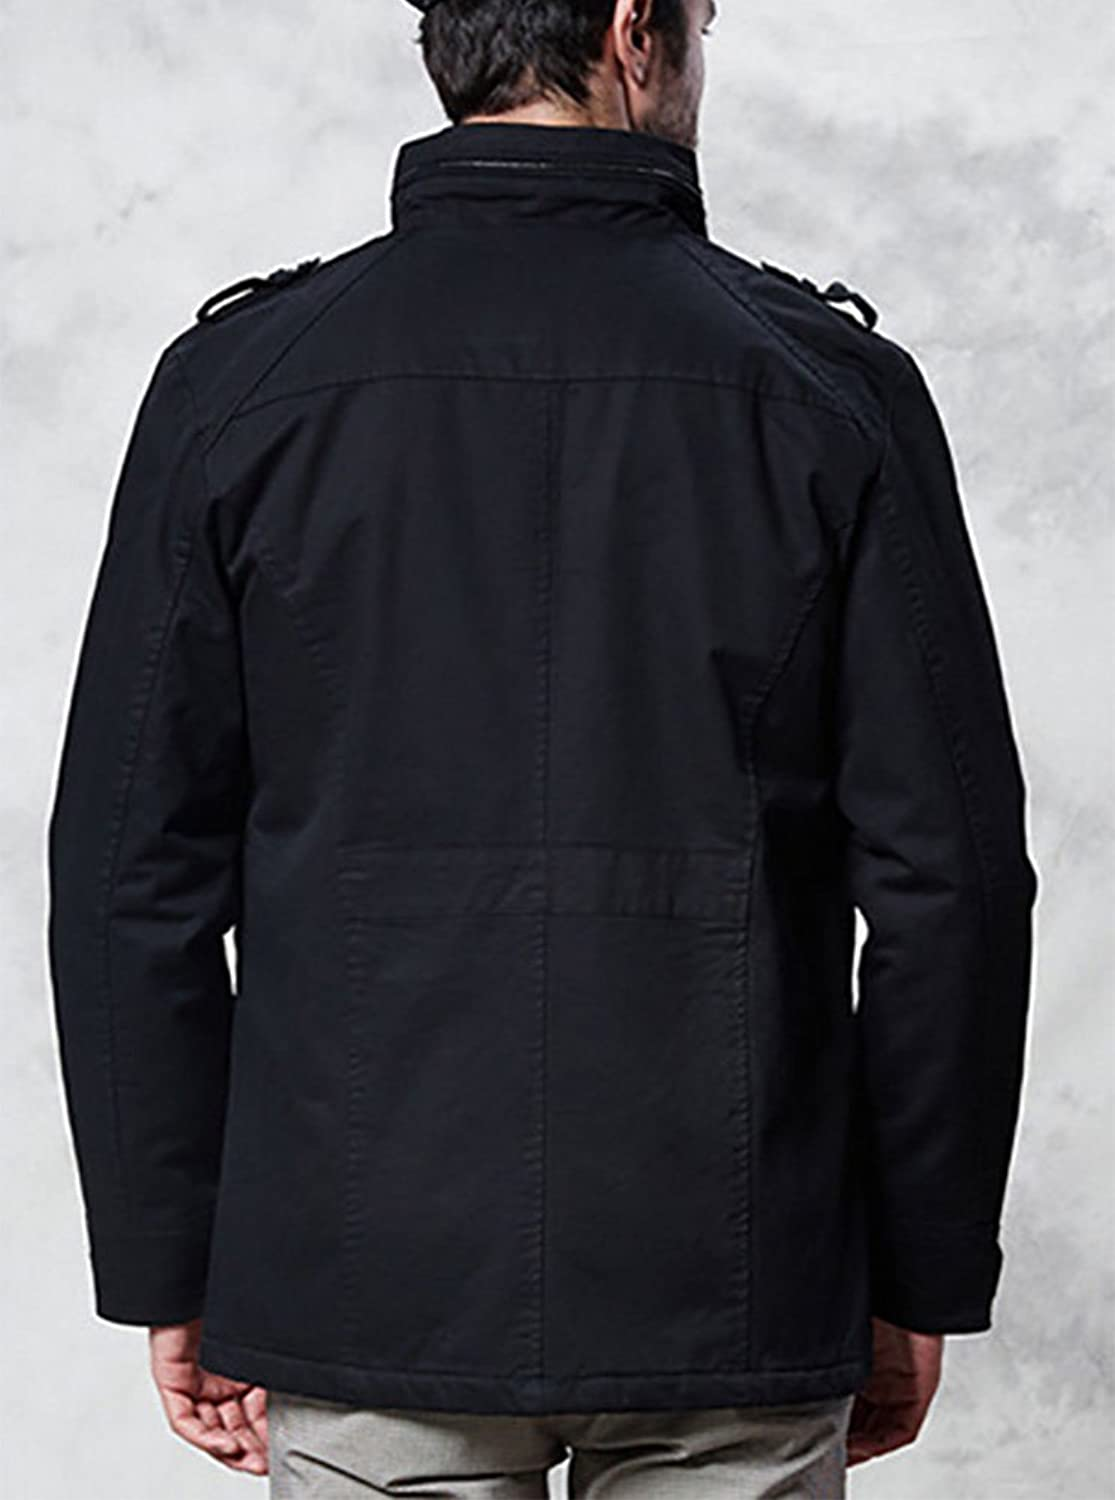 Baymate Men's Casual Thicken Jacket Long Sleeve Trench Coat Outwear